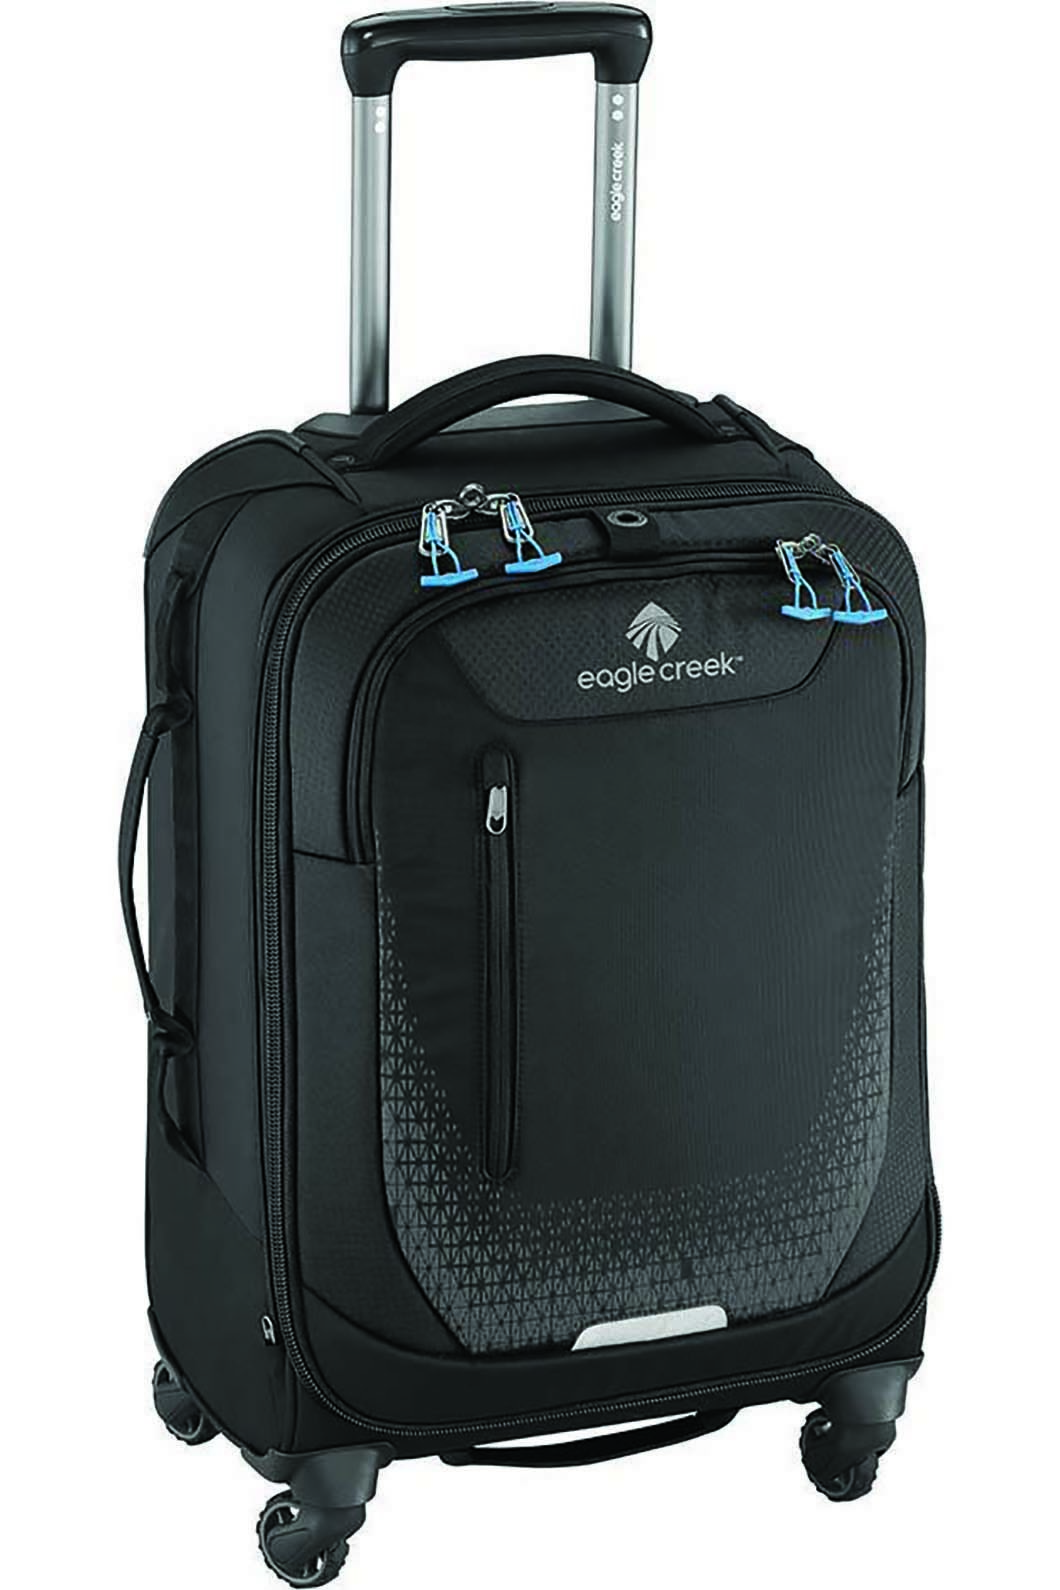 Eagle Creek Expanse AWD 41L Wheeled Luggage, None, hi-res